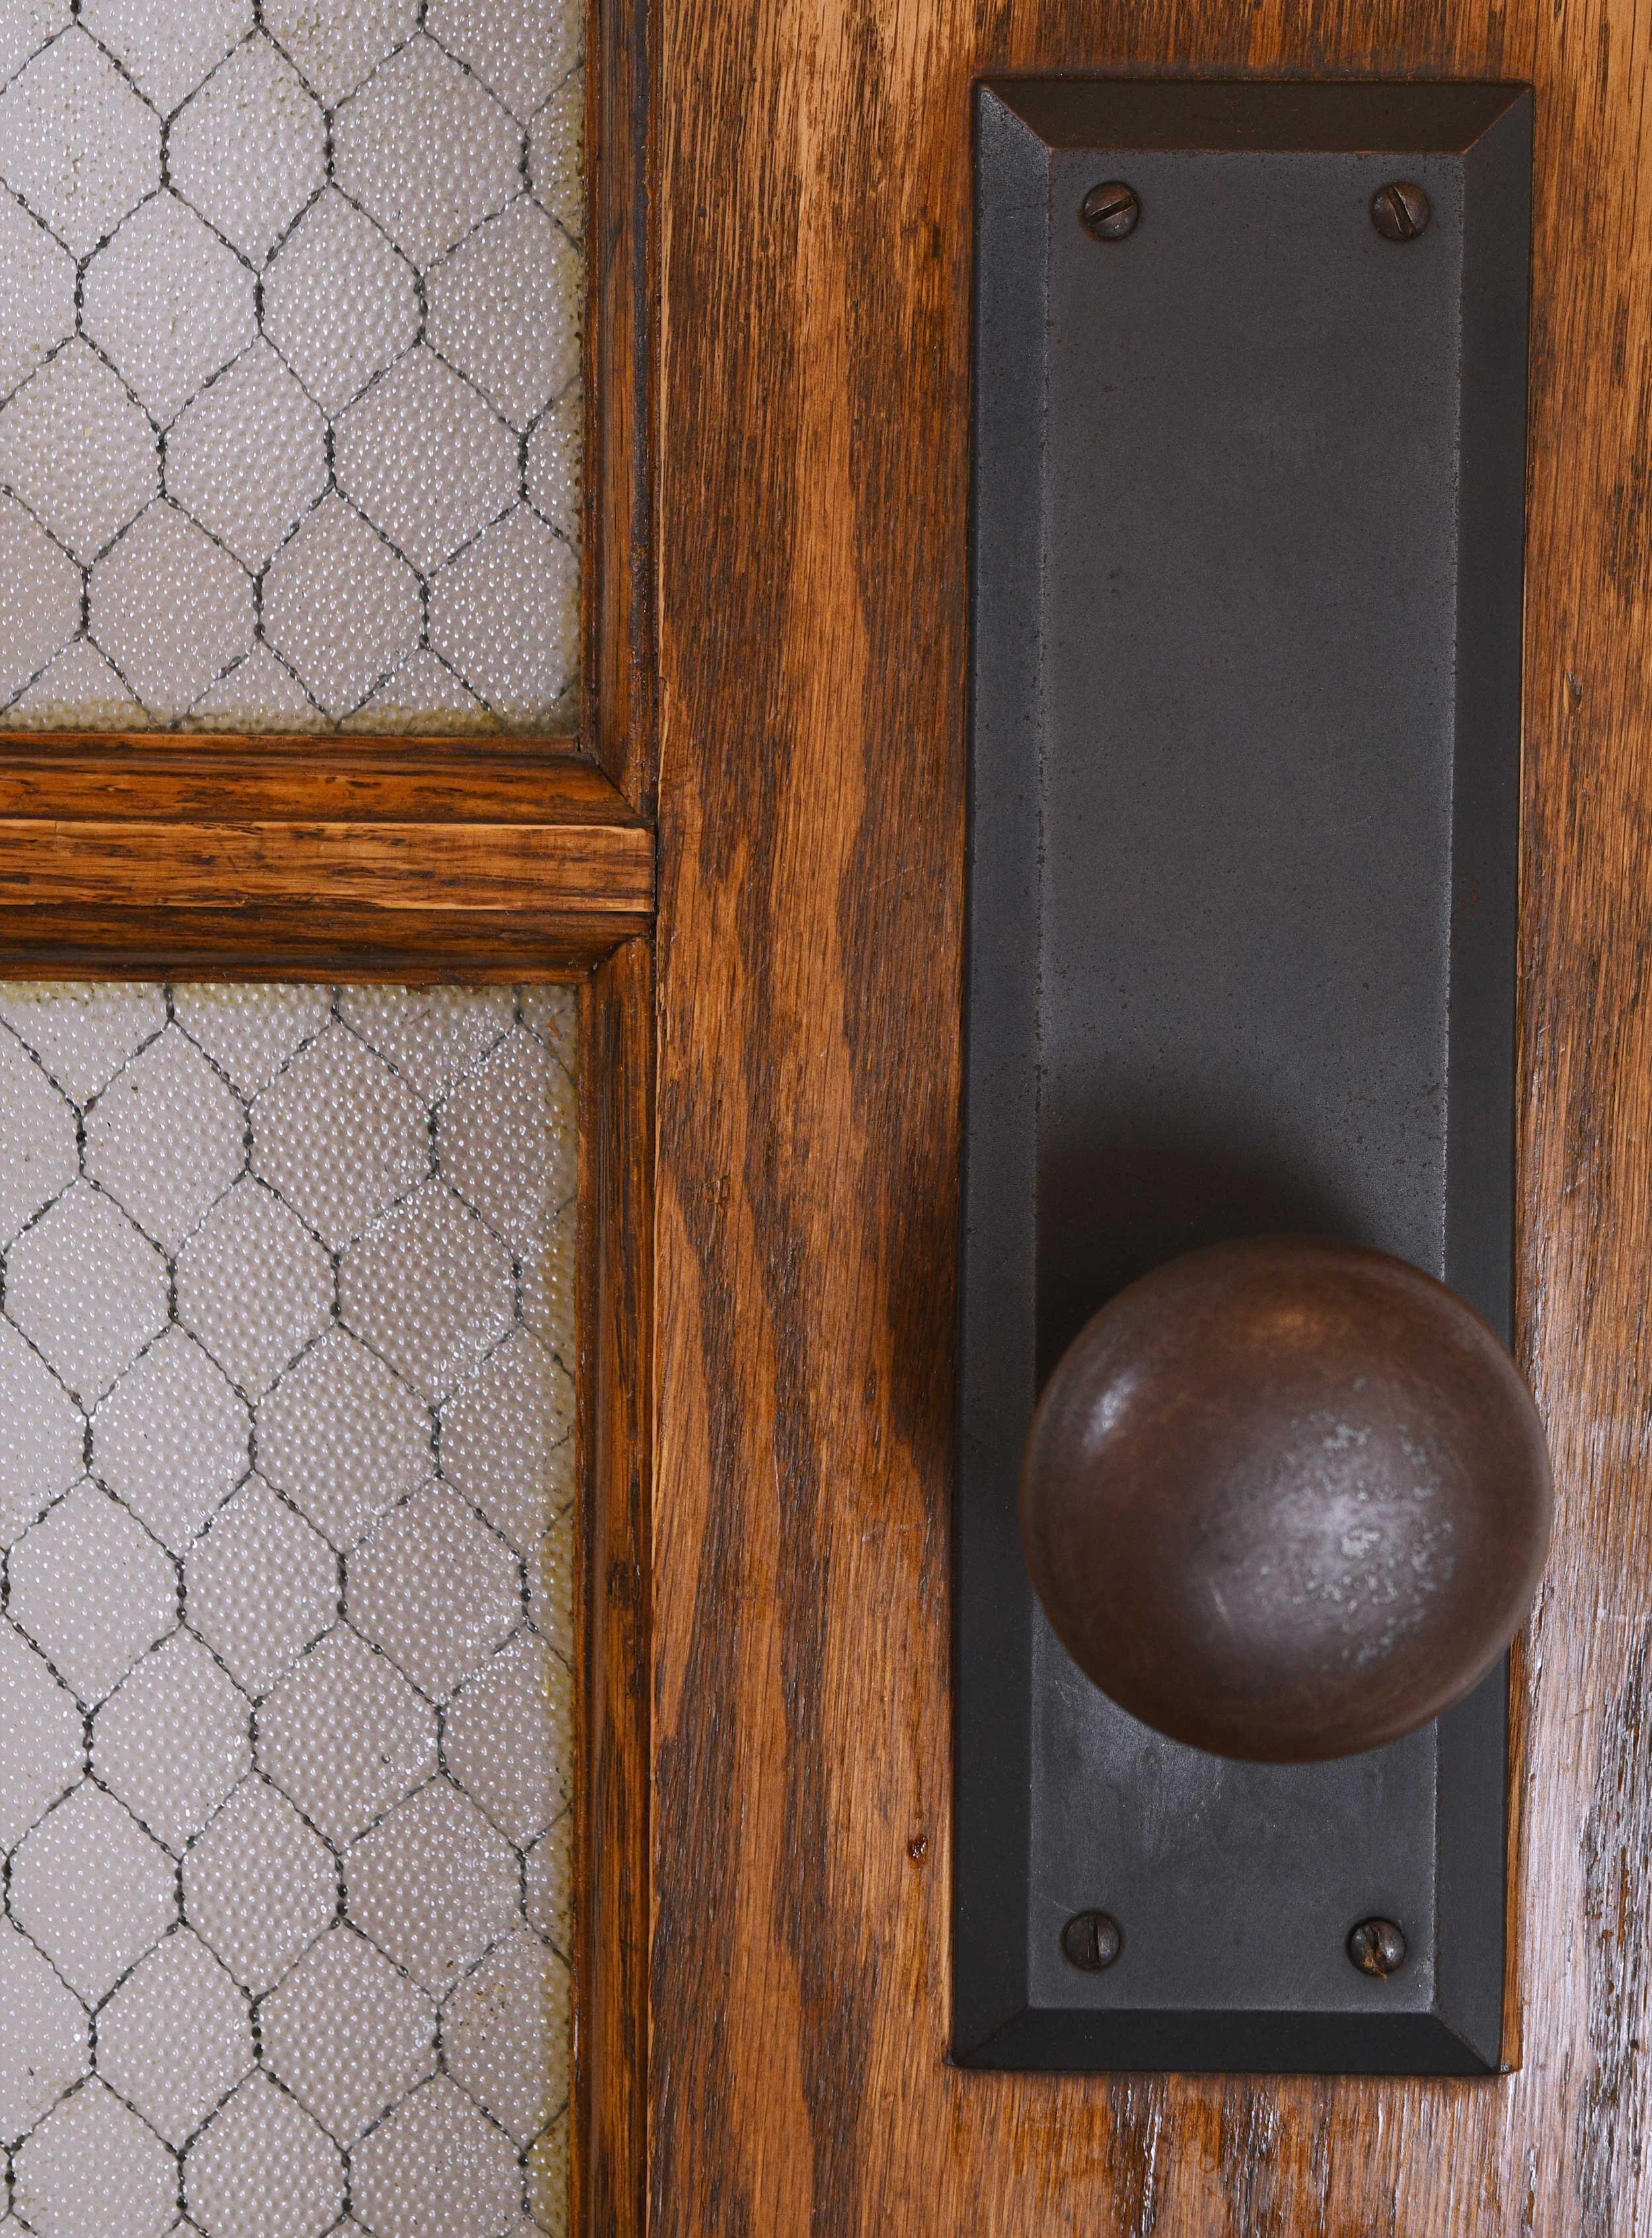 47878-chicken-wire-schoolhouse-door-details1.jpg